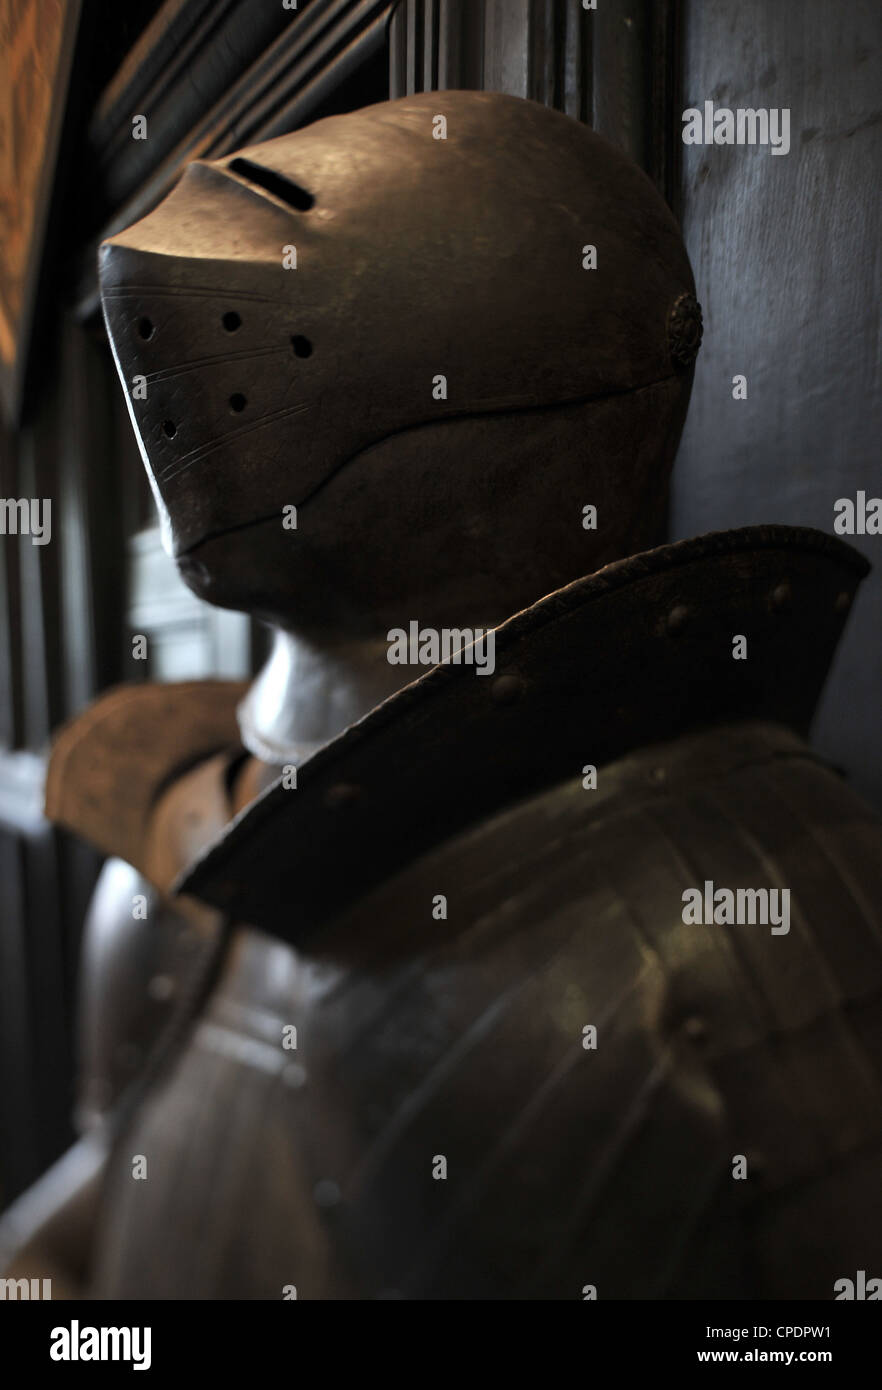 British medieval suit of armor helmet - Stock Image